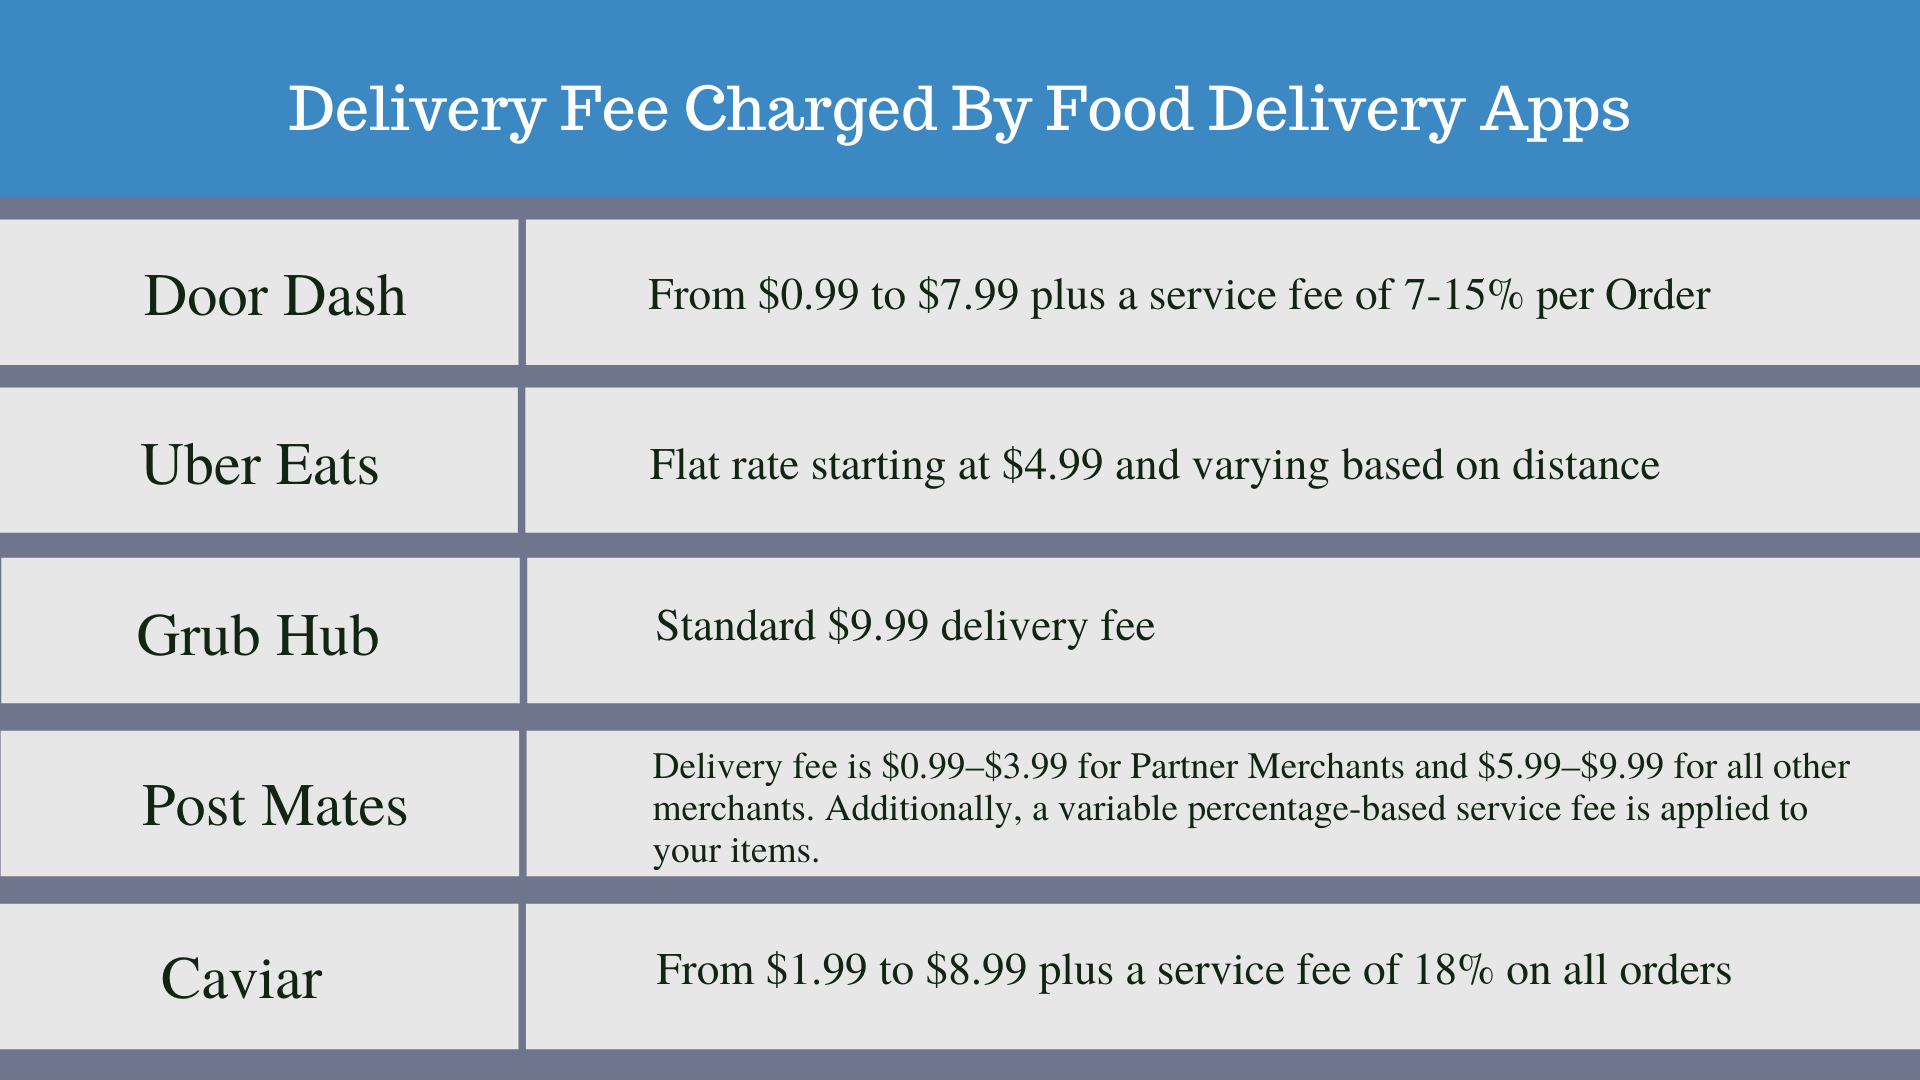 Delivery Fee Charged By Food delivery Apps: Making the most of third party delivery services